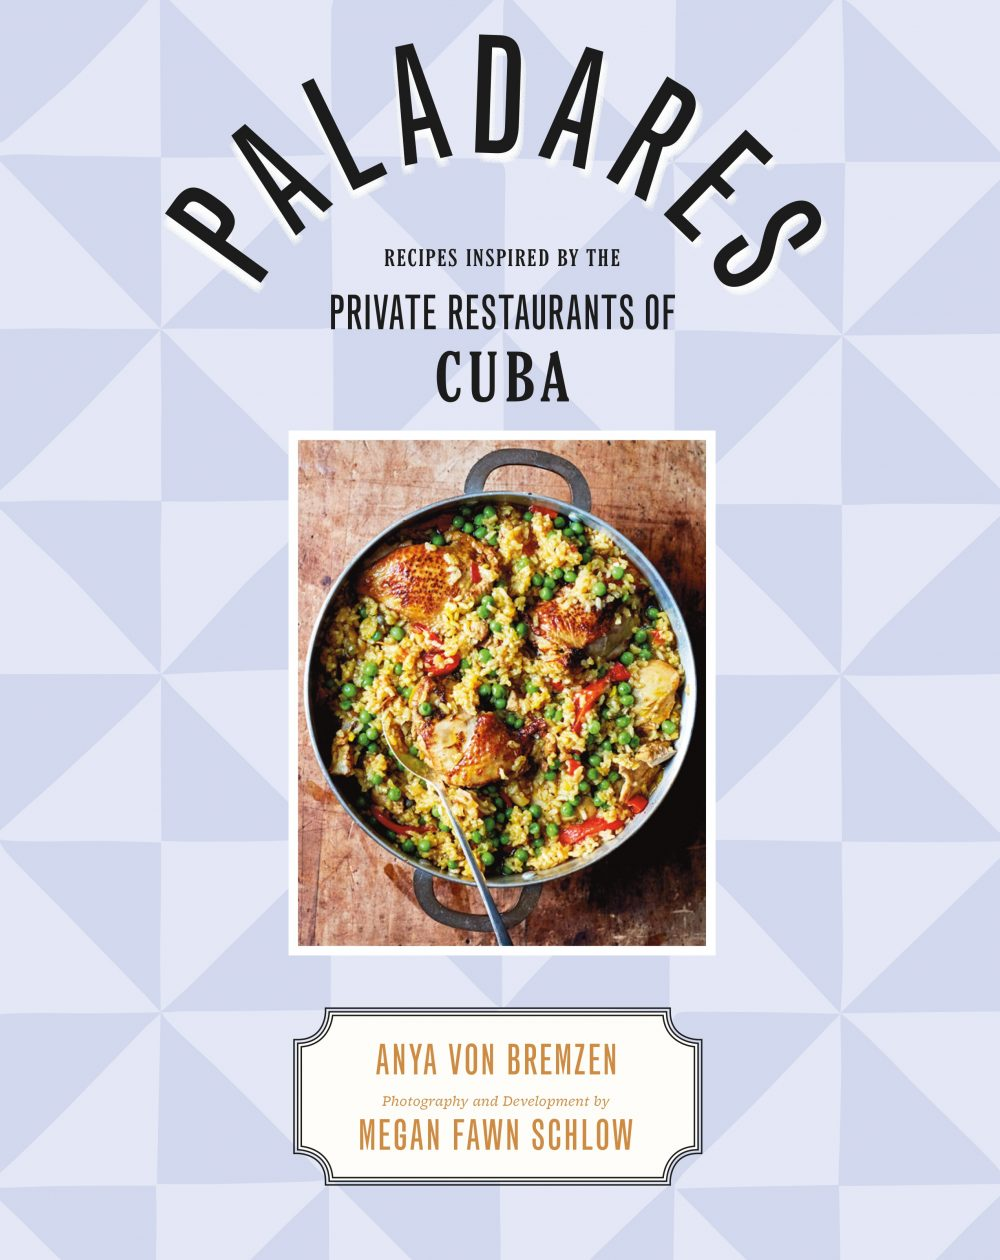 Paladares: Recipes Inspired by the Private Restaurants of Cuba